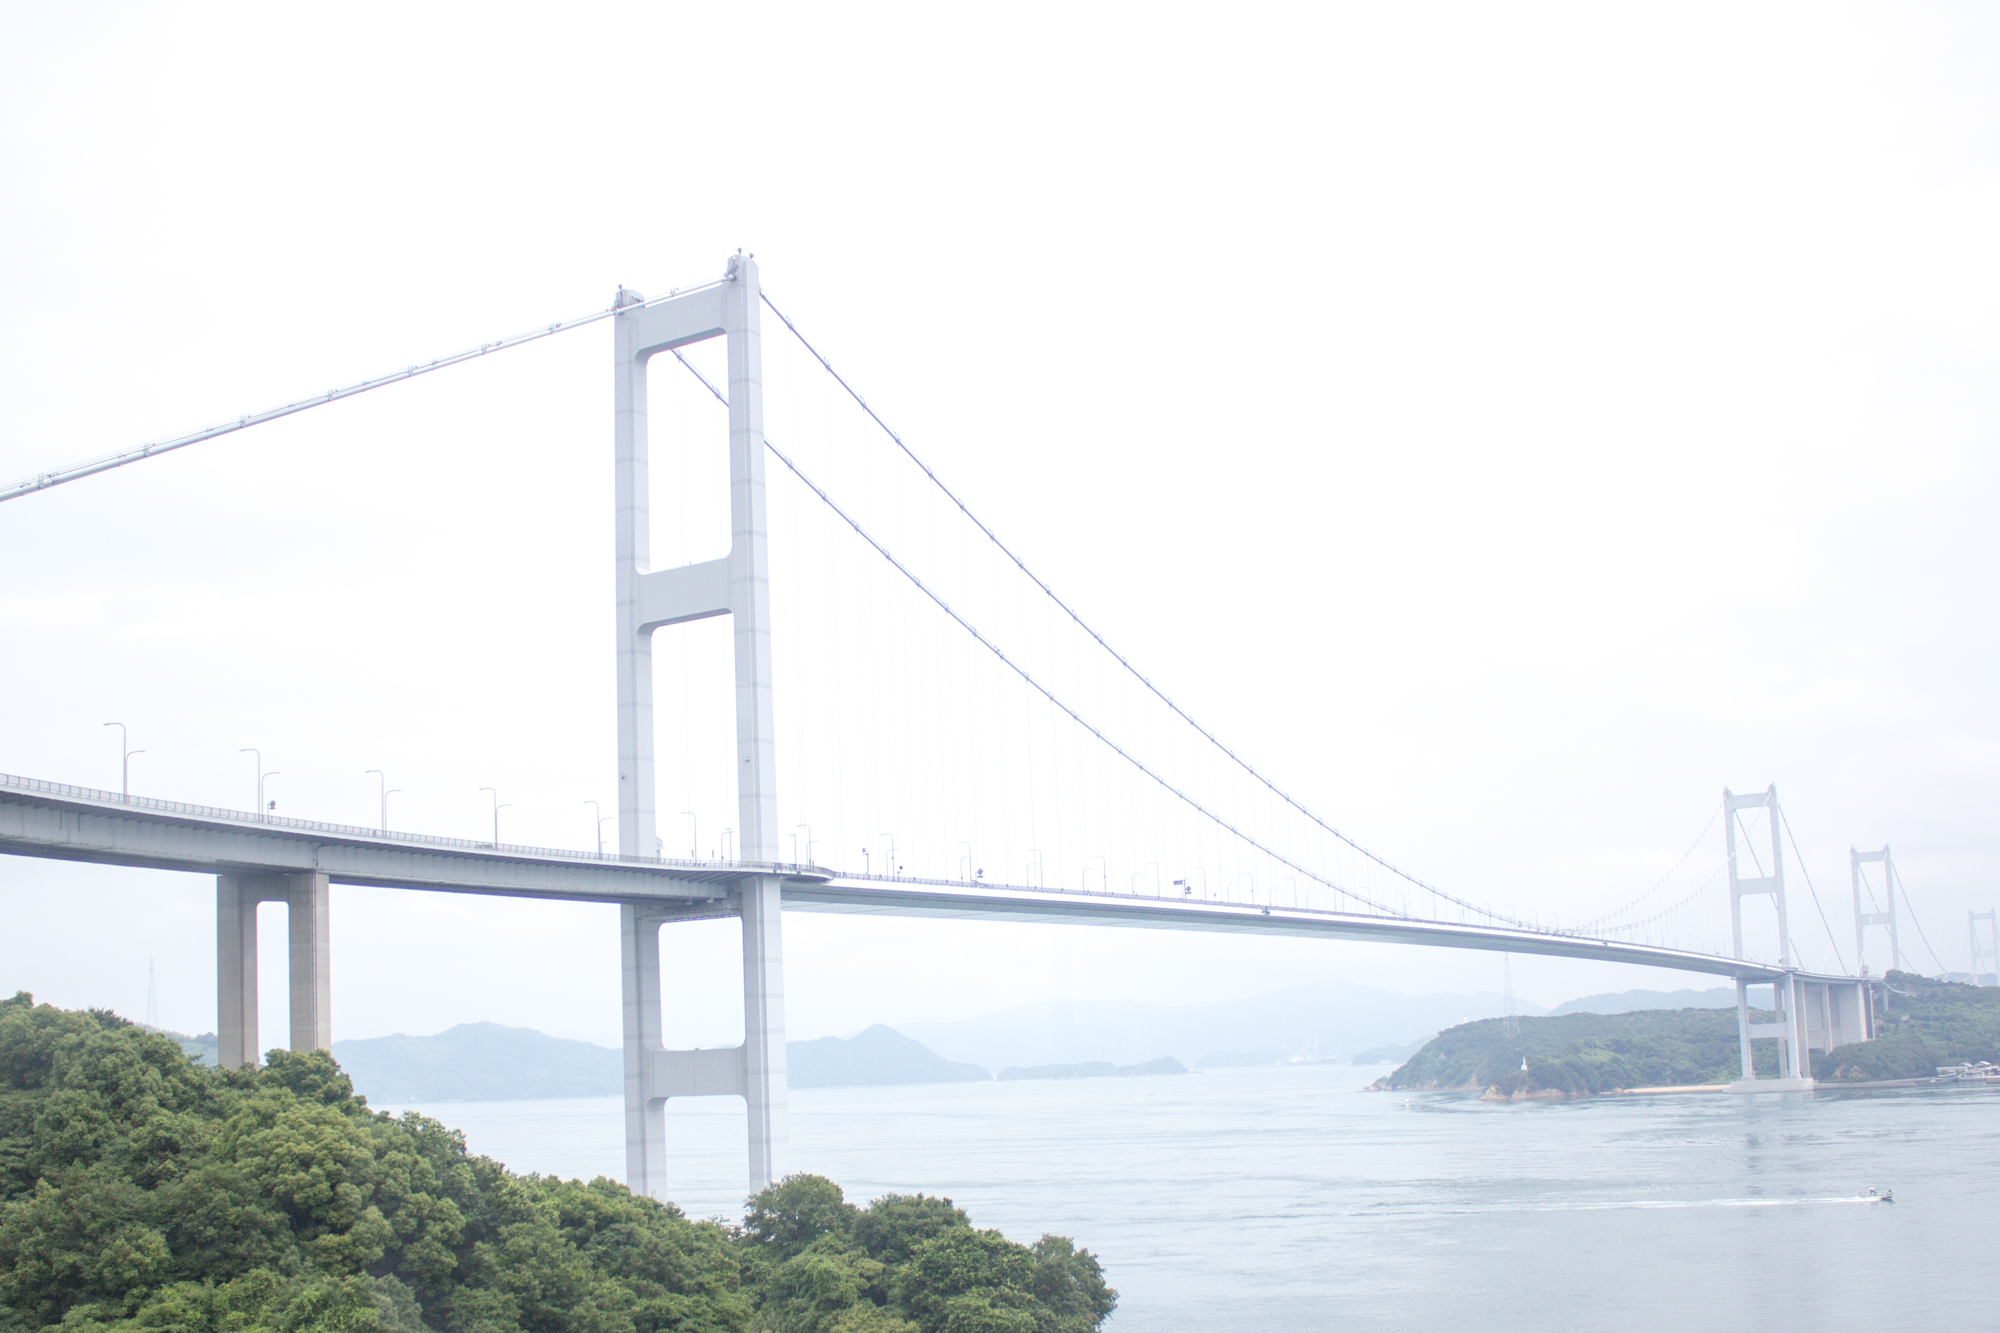 Shimanami Kaido  is a toll road connecting Japan's main island of Honshu with the island of Shikoku, all overlooking the  Seto Inland Sea .